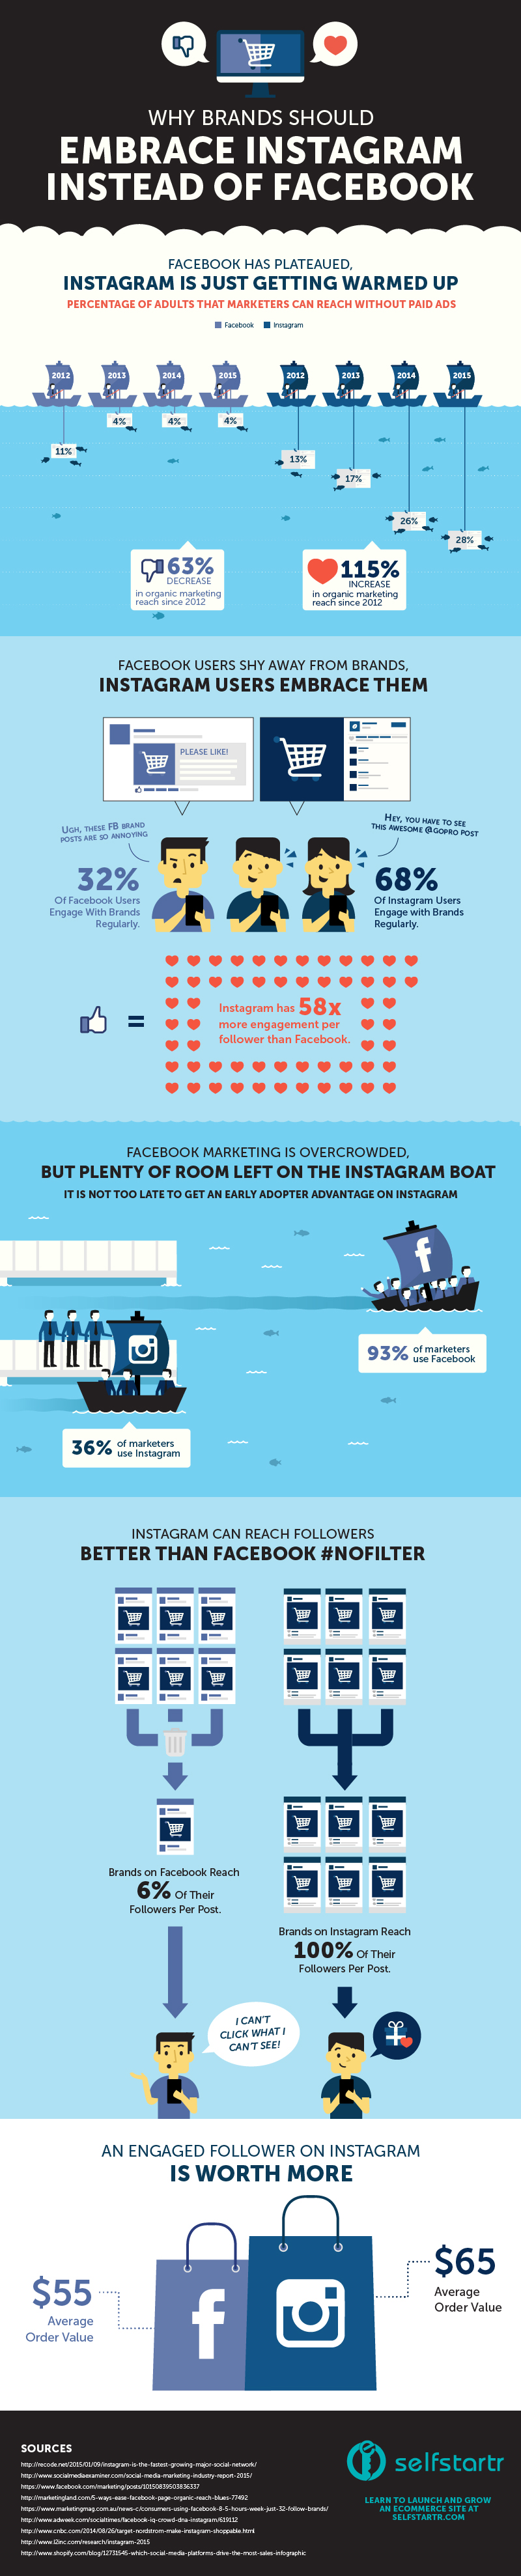 YibLab Facebook vs Instagram infographic